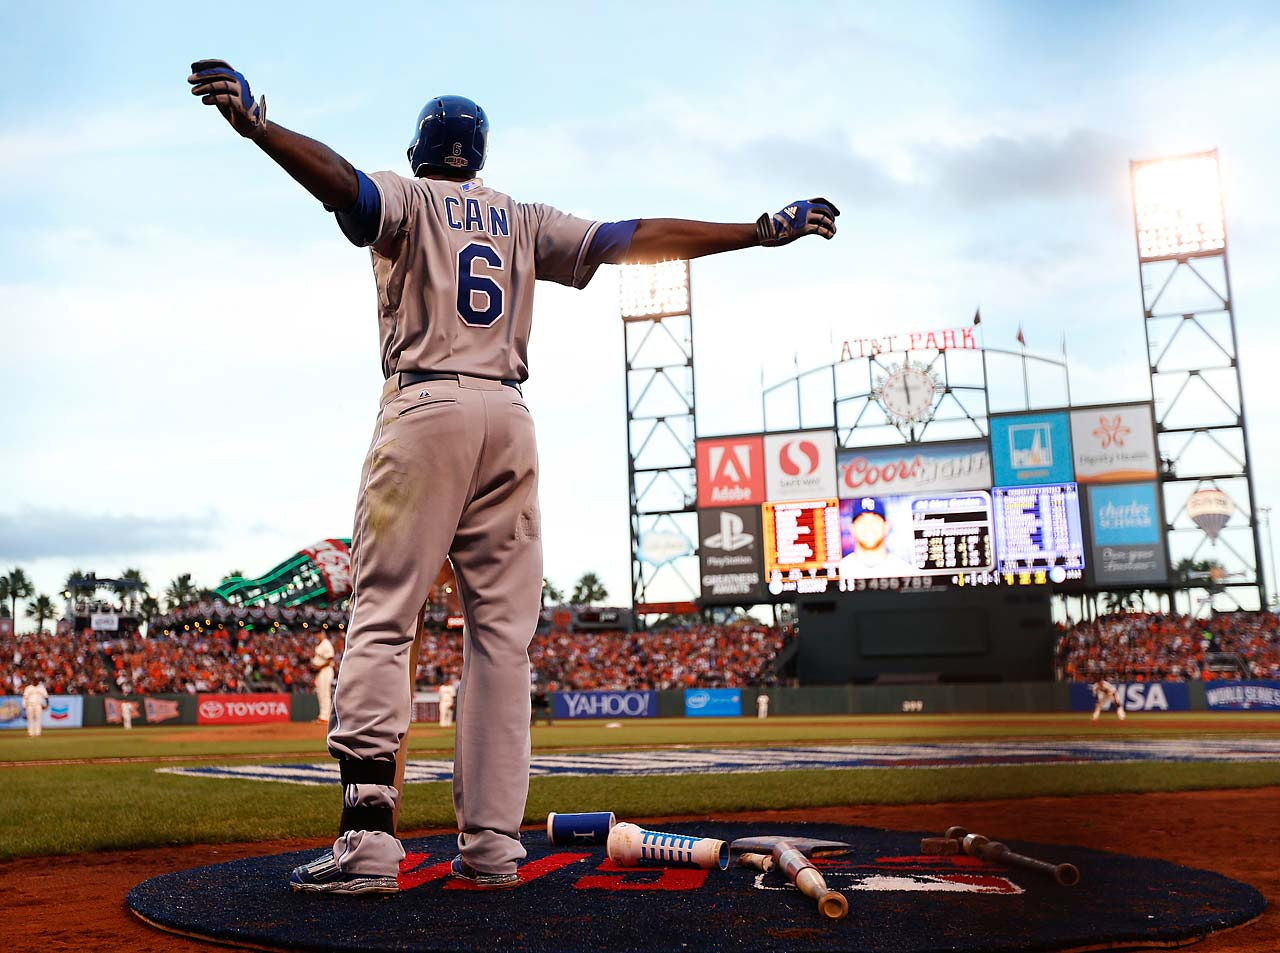 The Giants had won six consecutive World Series games at their home park before Lorenzo Cain and the Royals won Friday night.